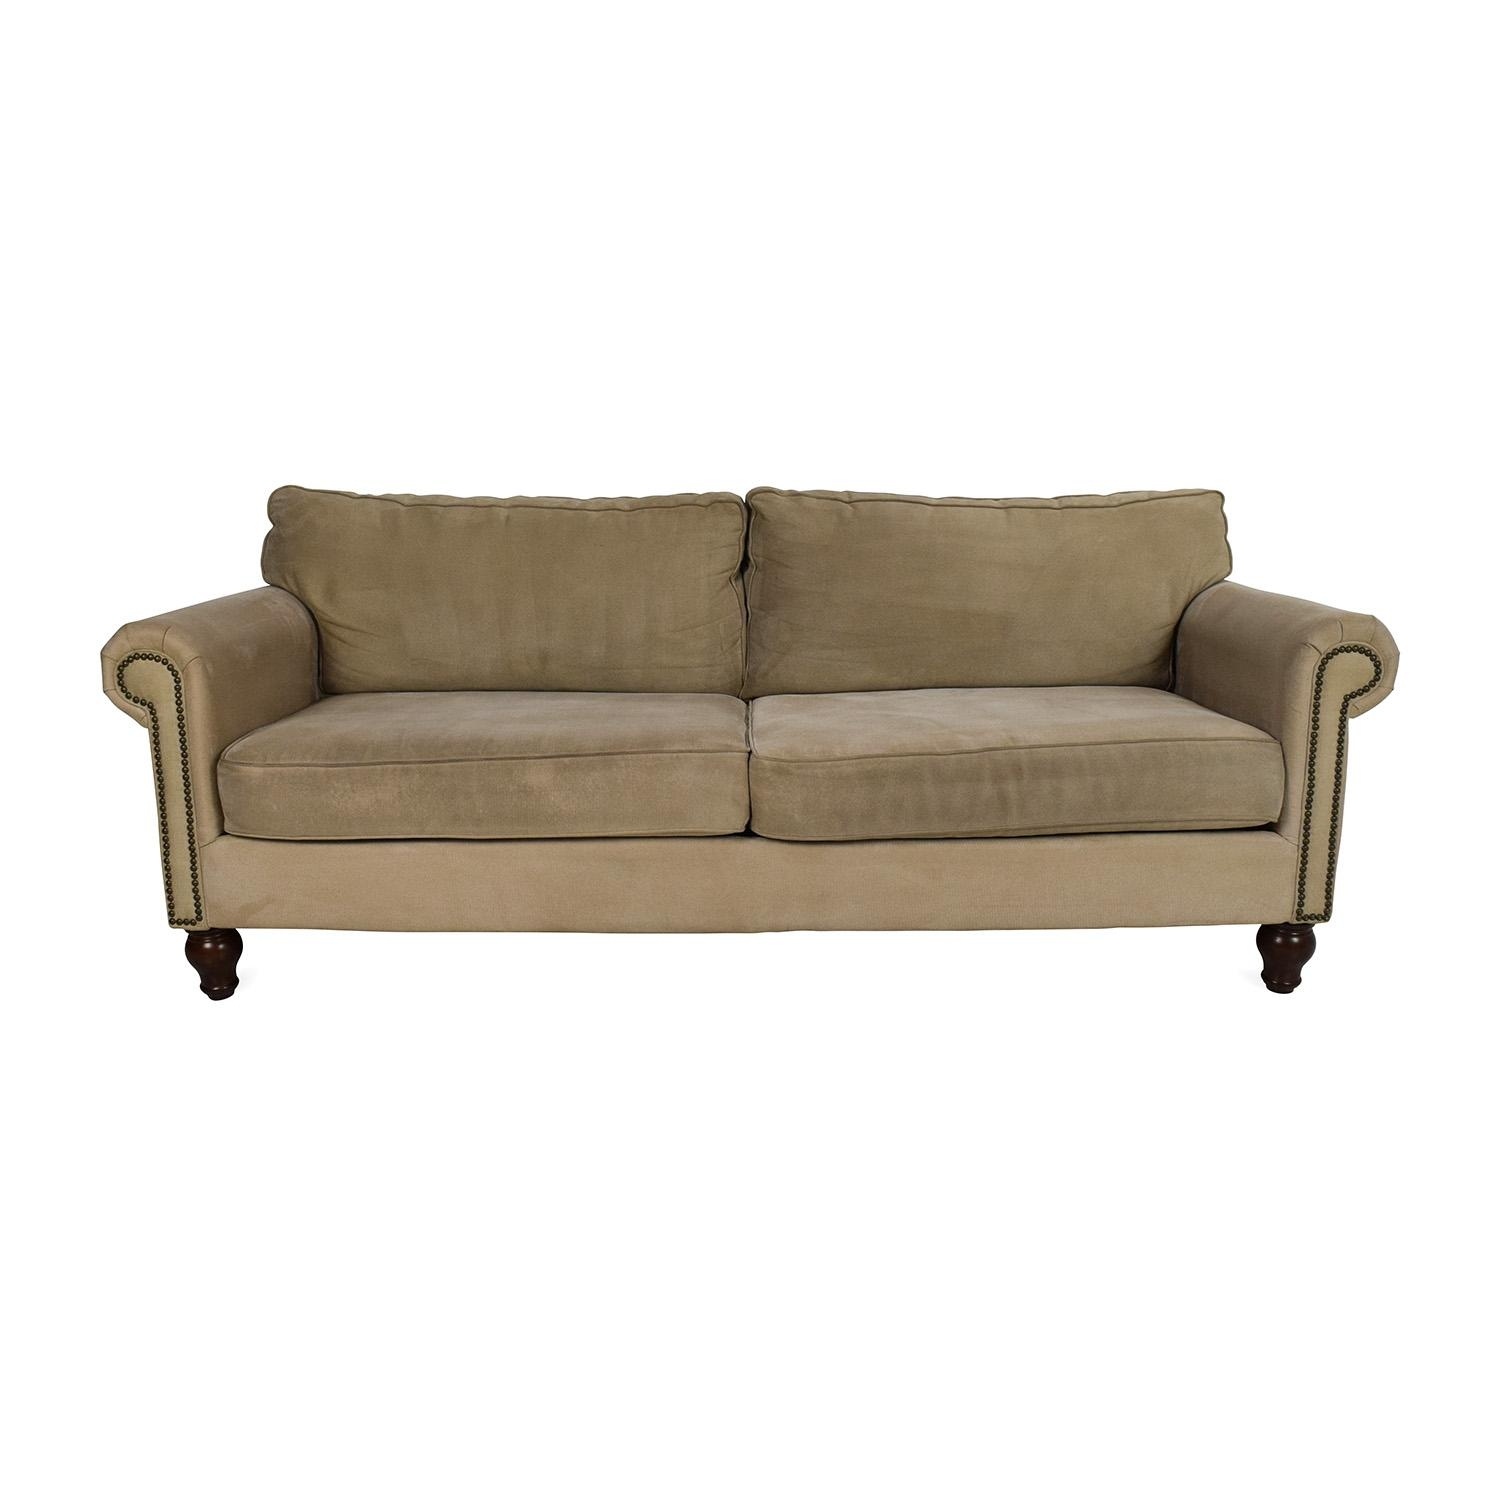 80% Off - Pier 1 Imports Pier 1 Alton Rolled Arm Sofa / Sofas throughout Pier 1 Sofas